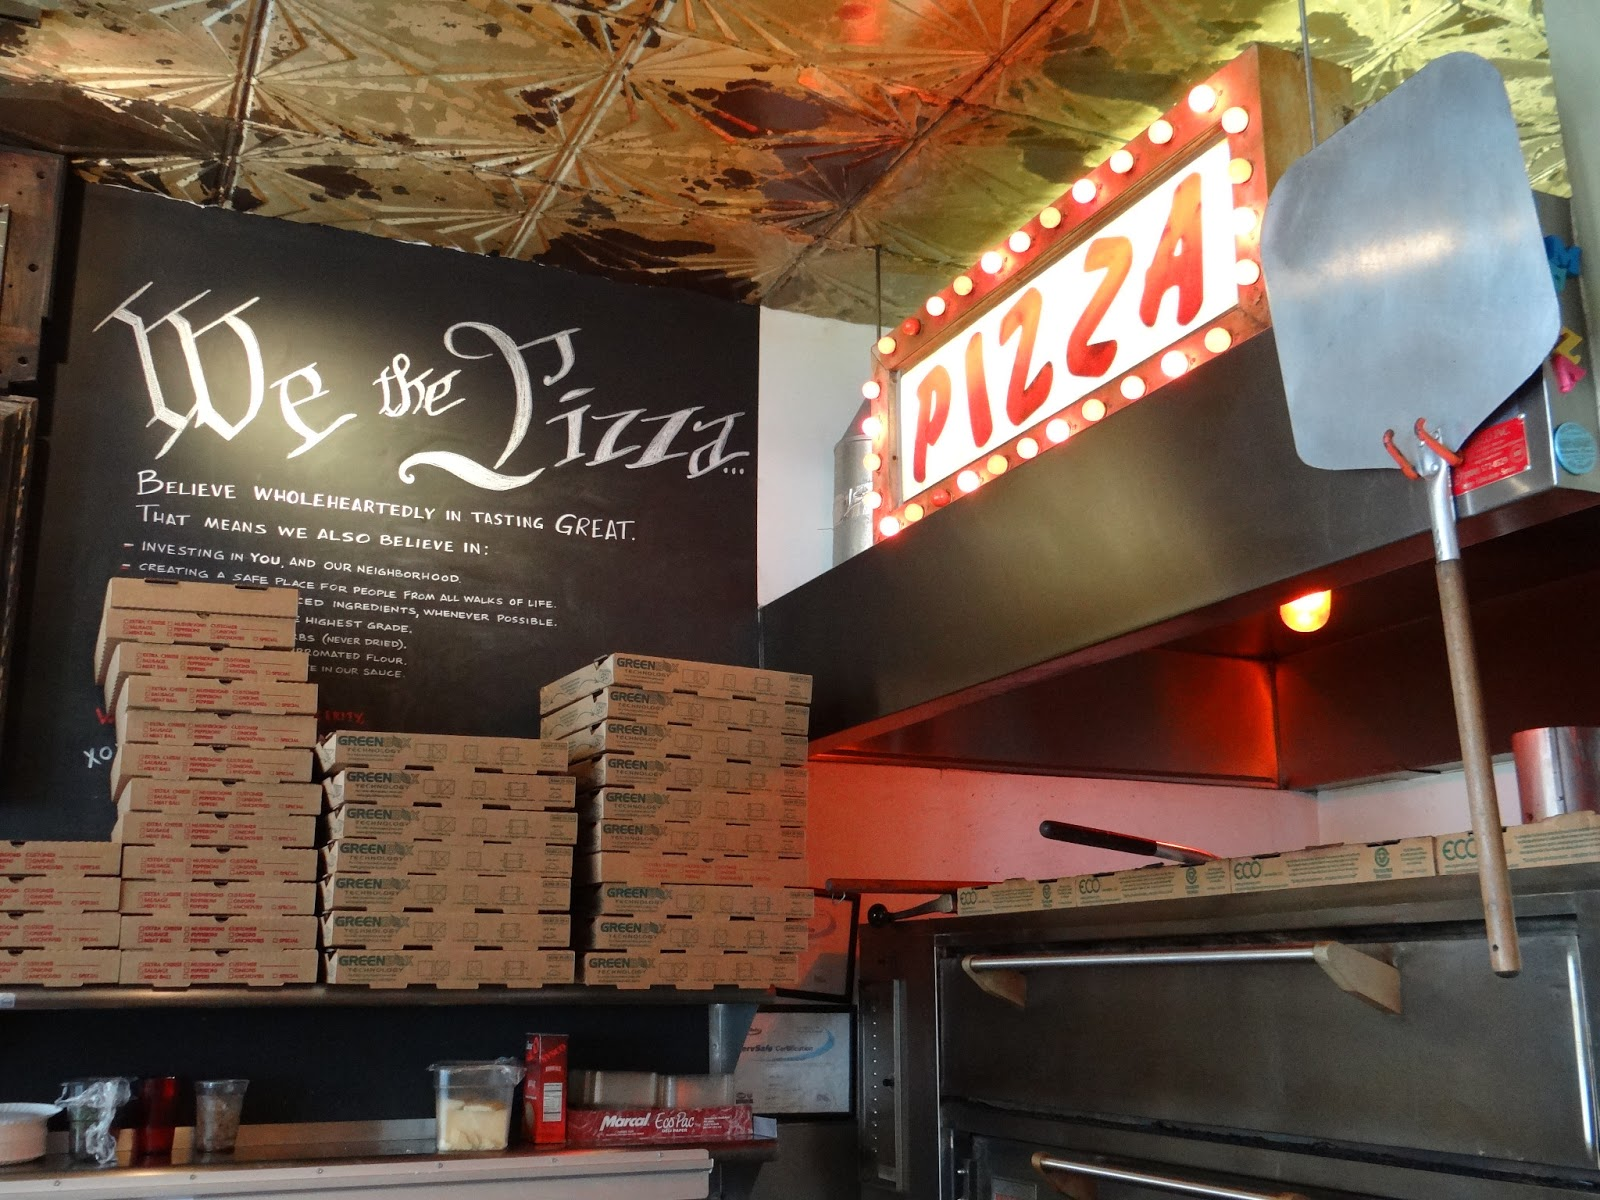 Philly s pizza brain a museum turned pizzeria i dream